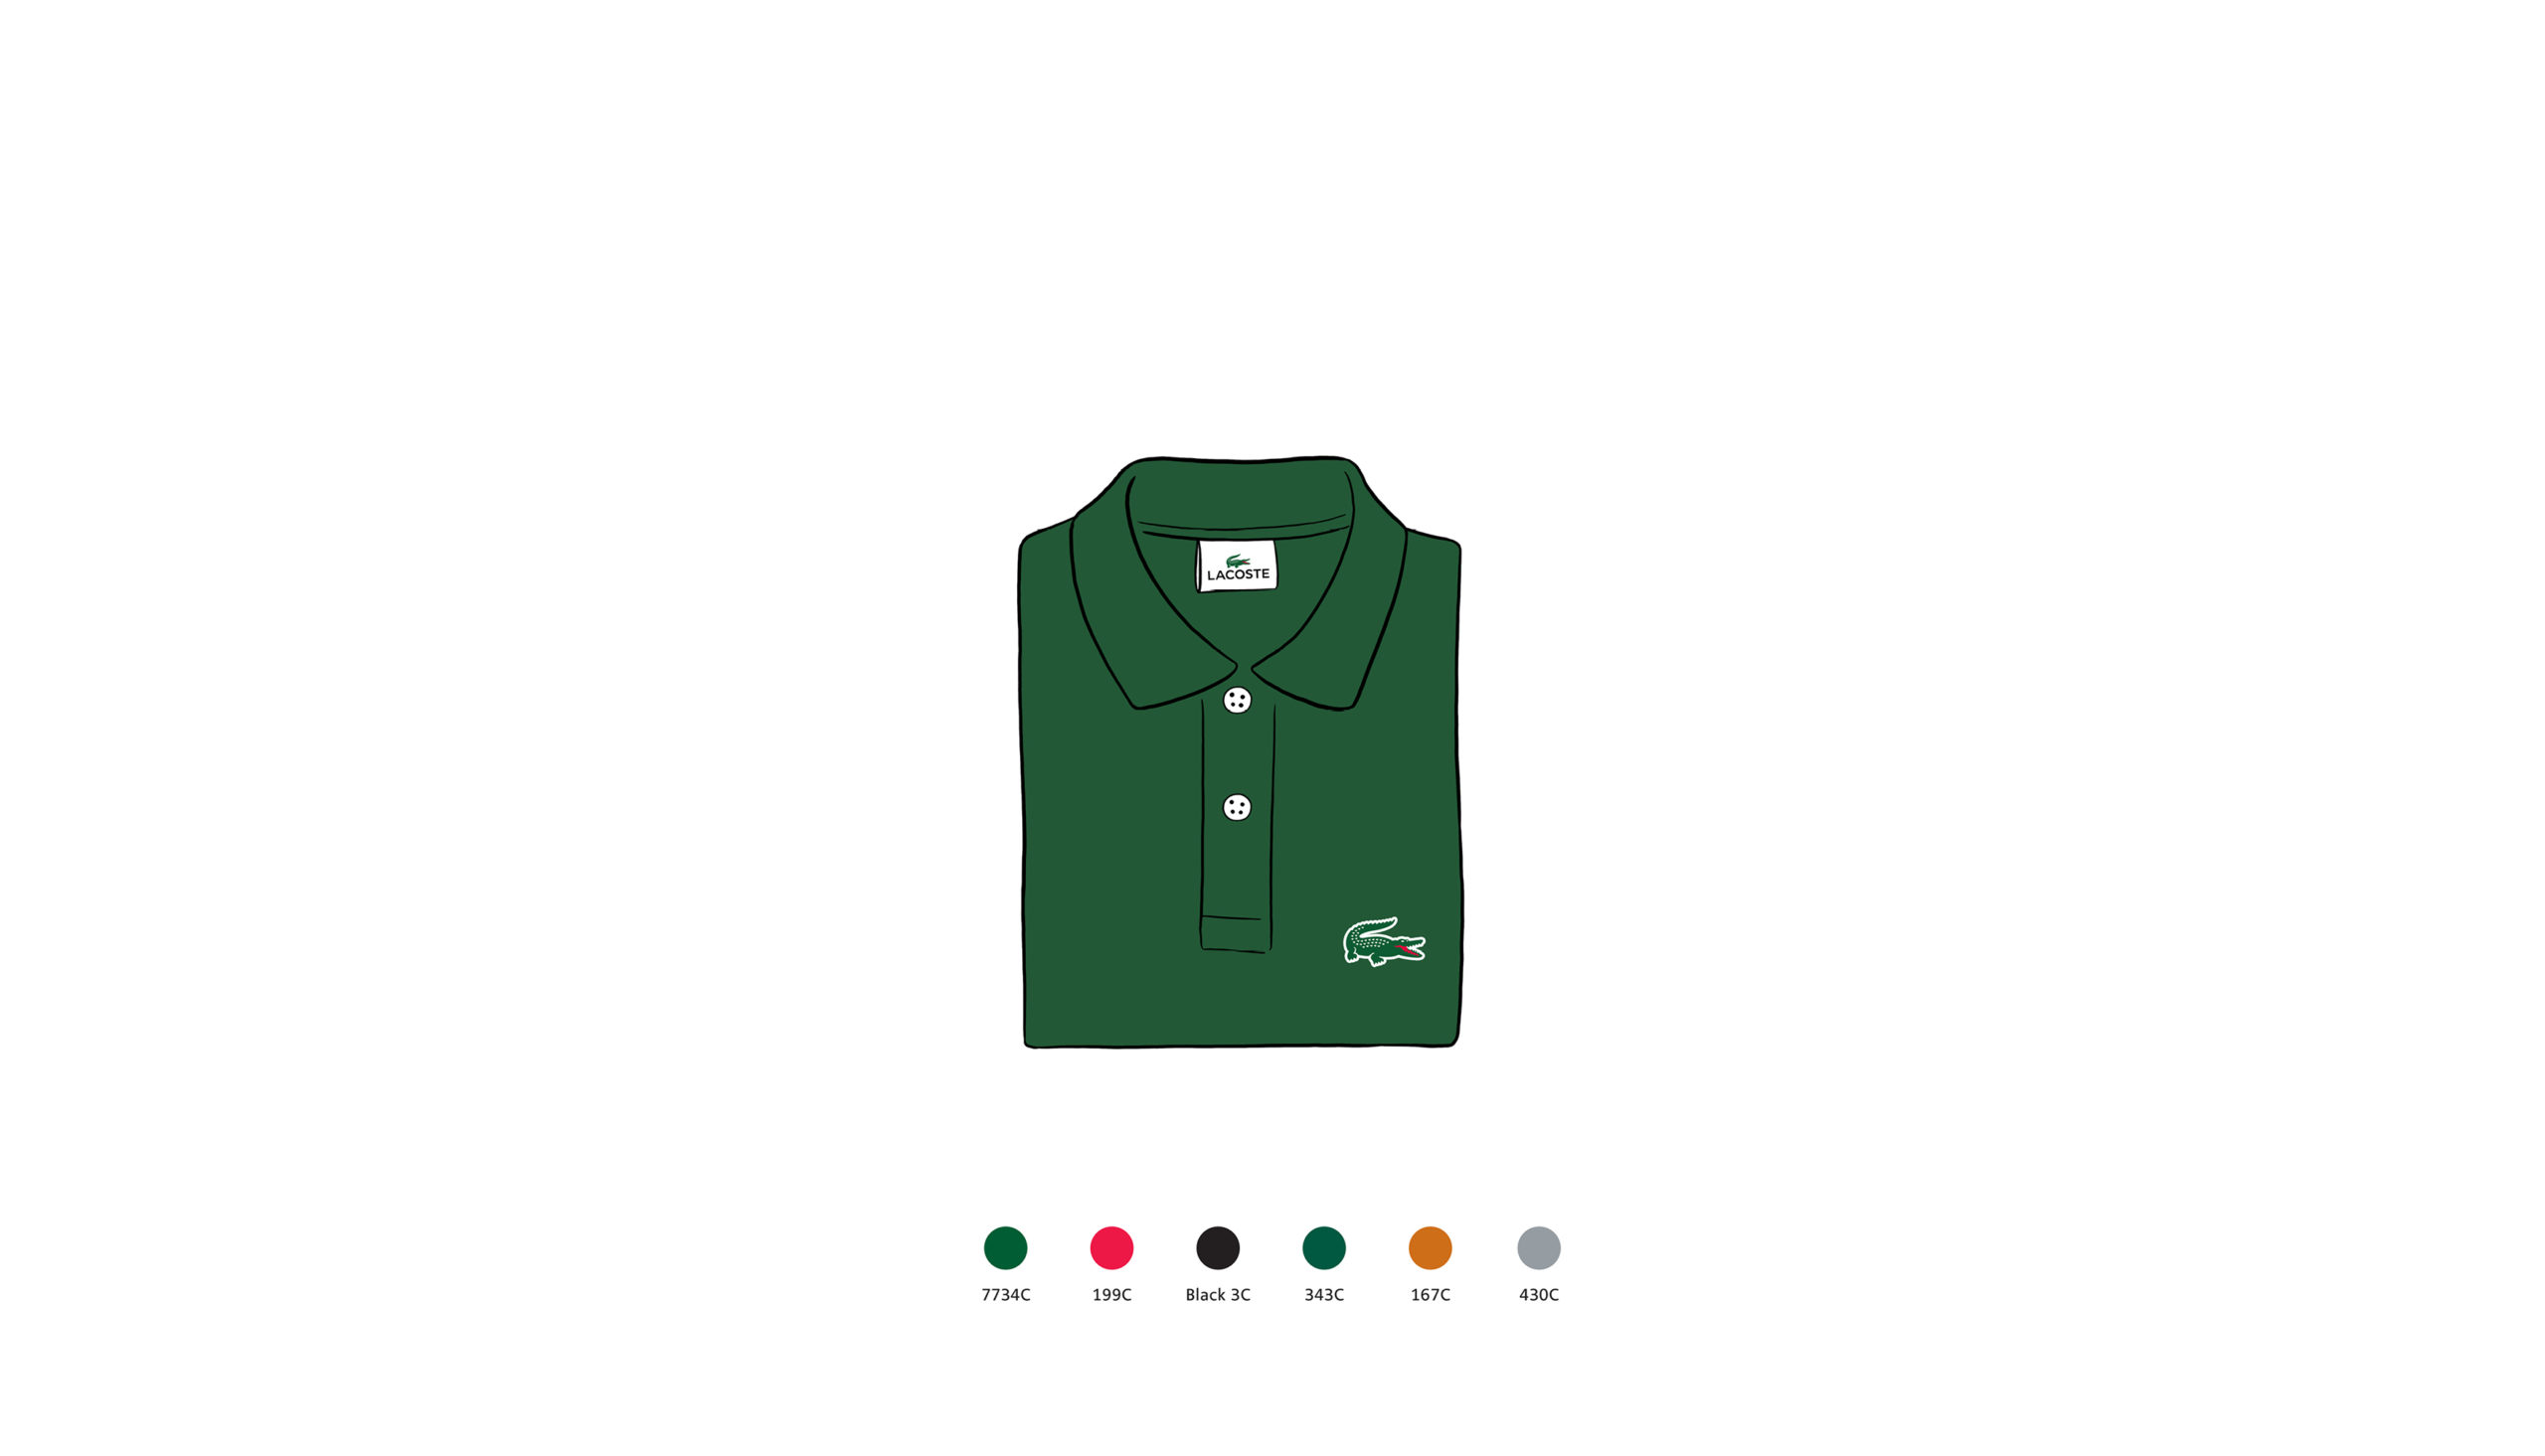 LACOSTE_STICKERS_HOBBYNOTE_R_0821